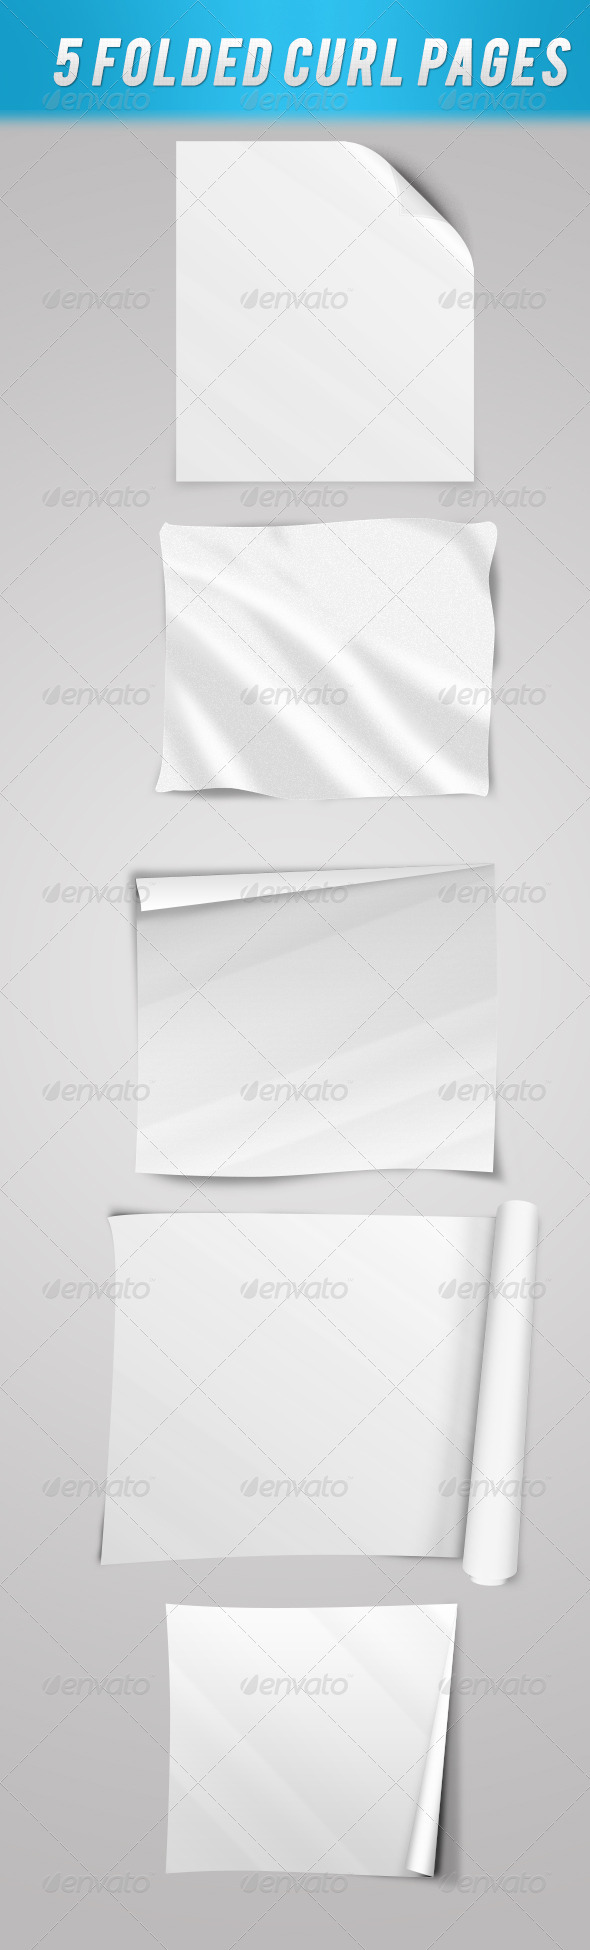 5 Folded Curl Pages  - Decorative Graphics